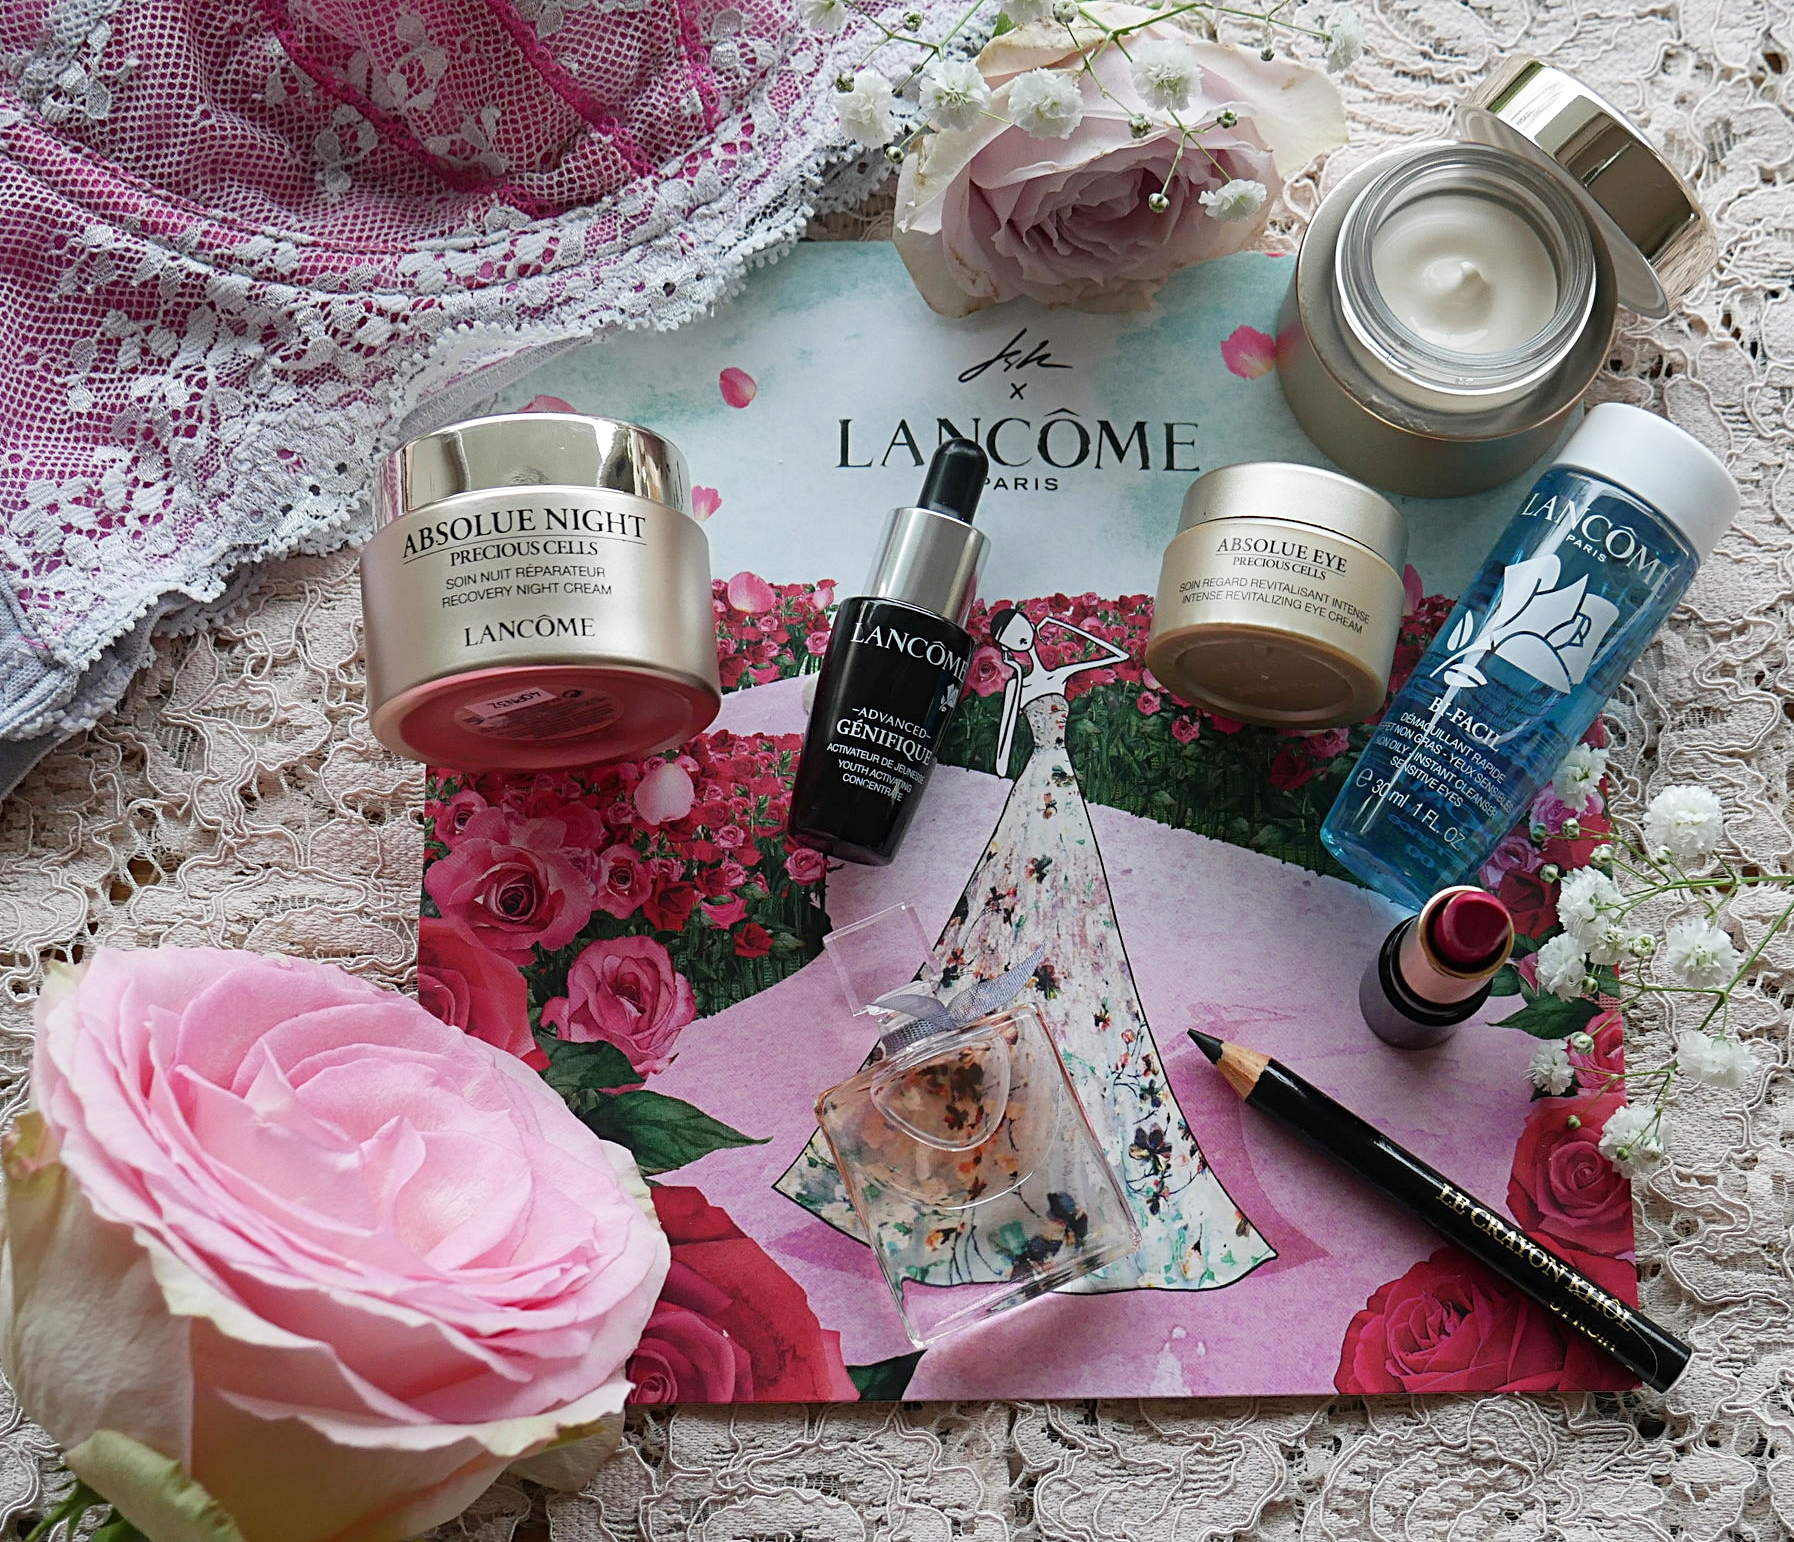 A selection of different Lancome beauty products spread out against a lace floral background , the underwire of a pink bra and a pink flower